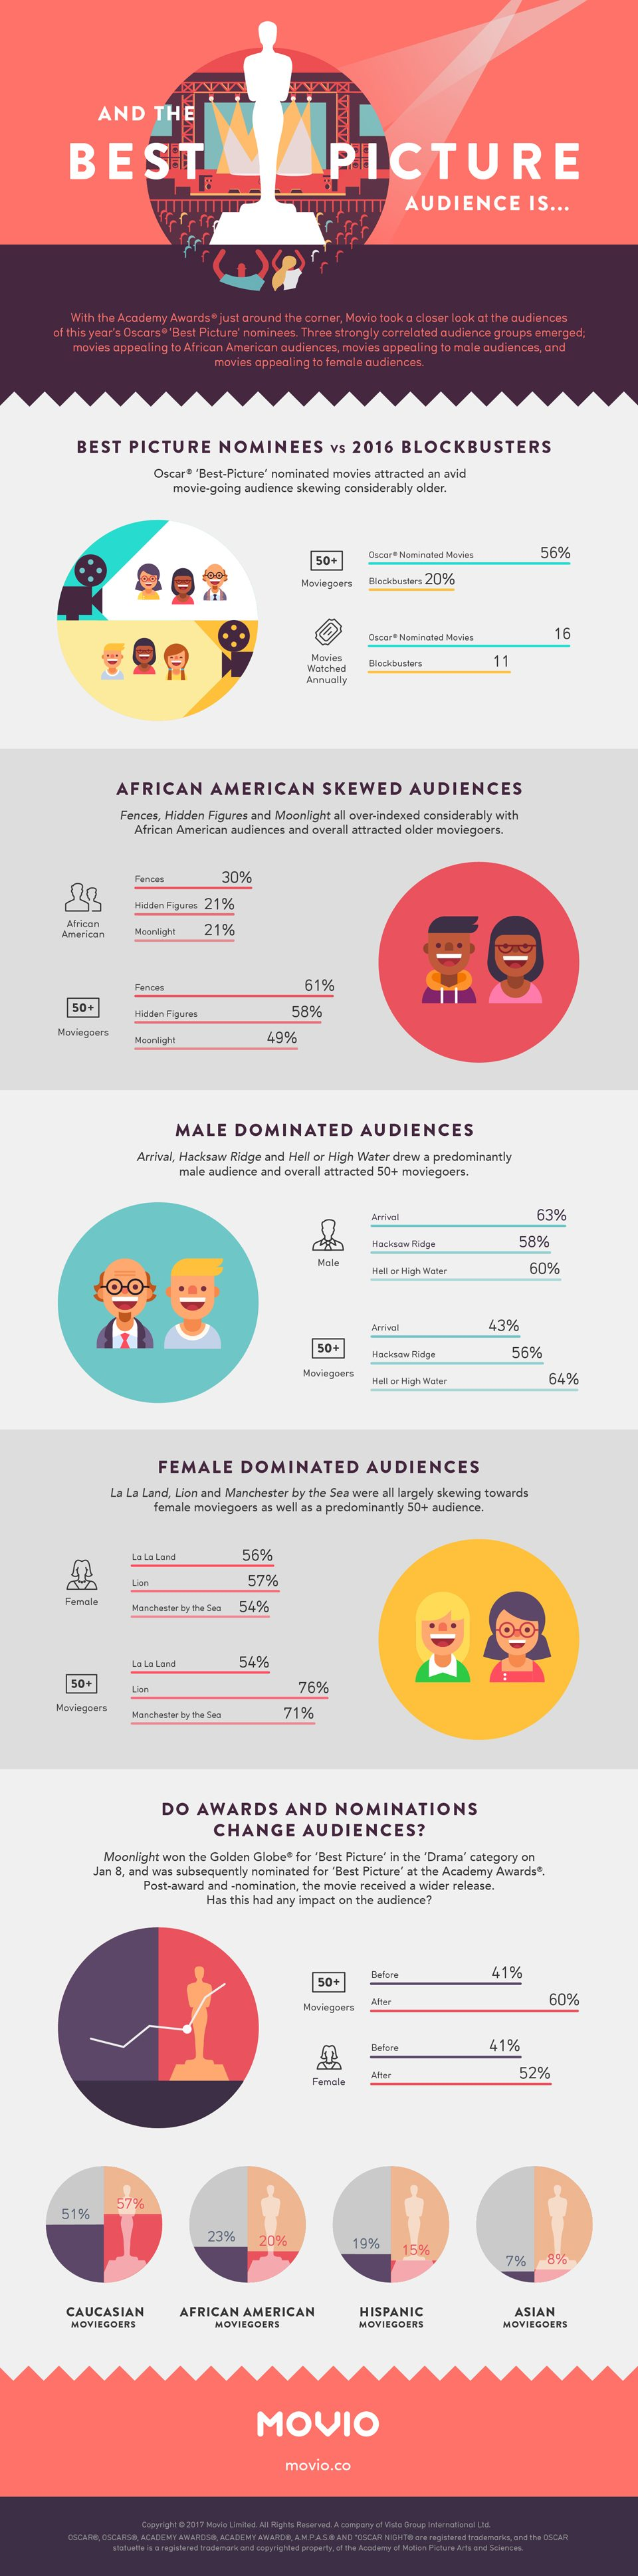 Movio and AARP 2017 Oscar Study Infographic